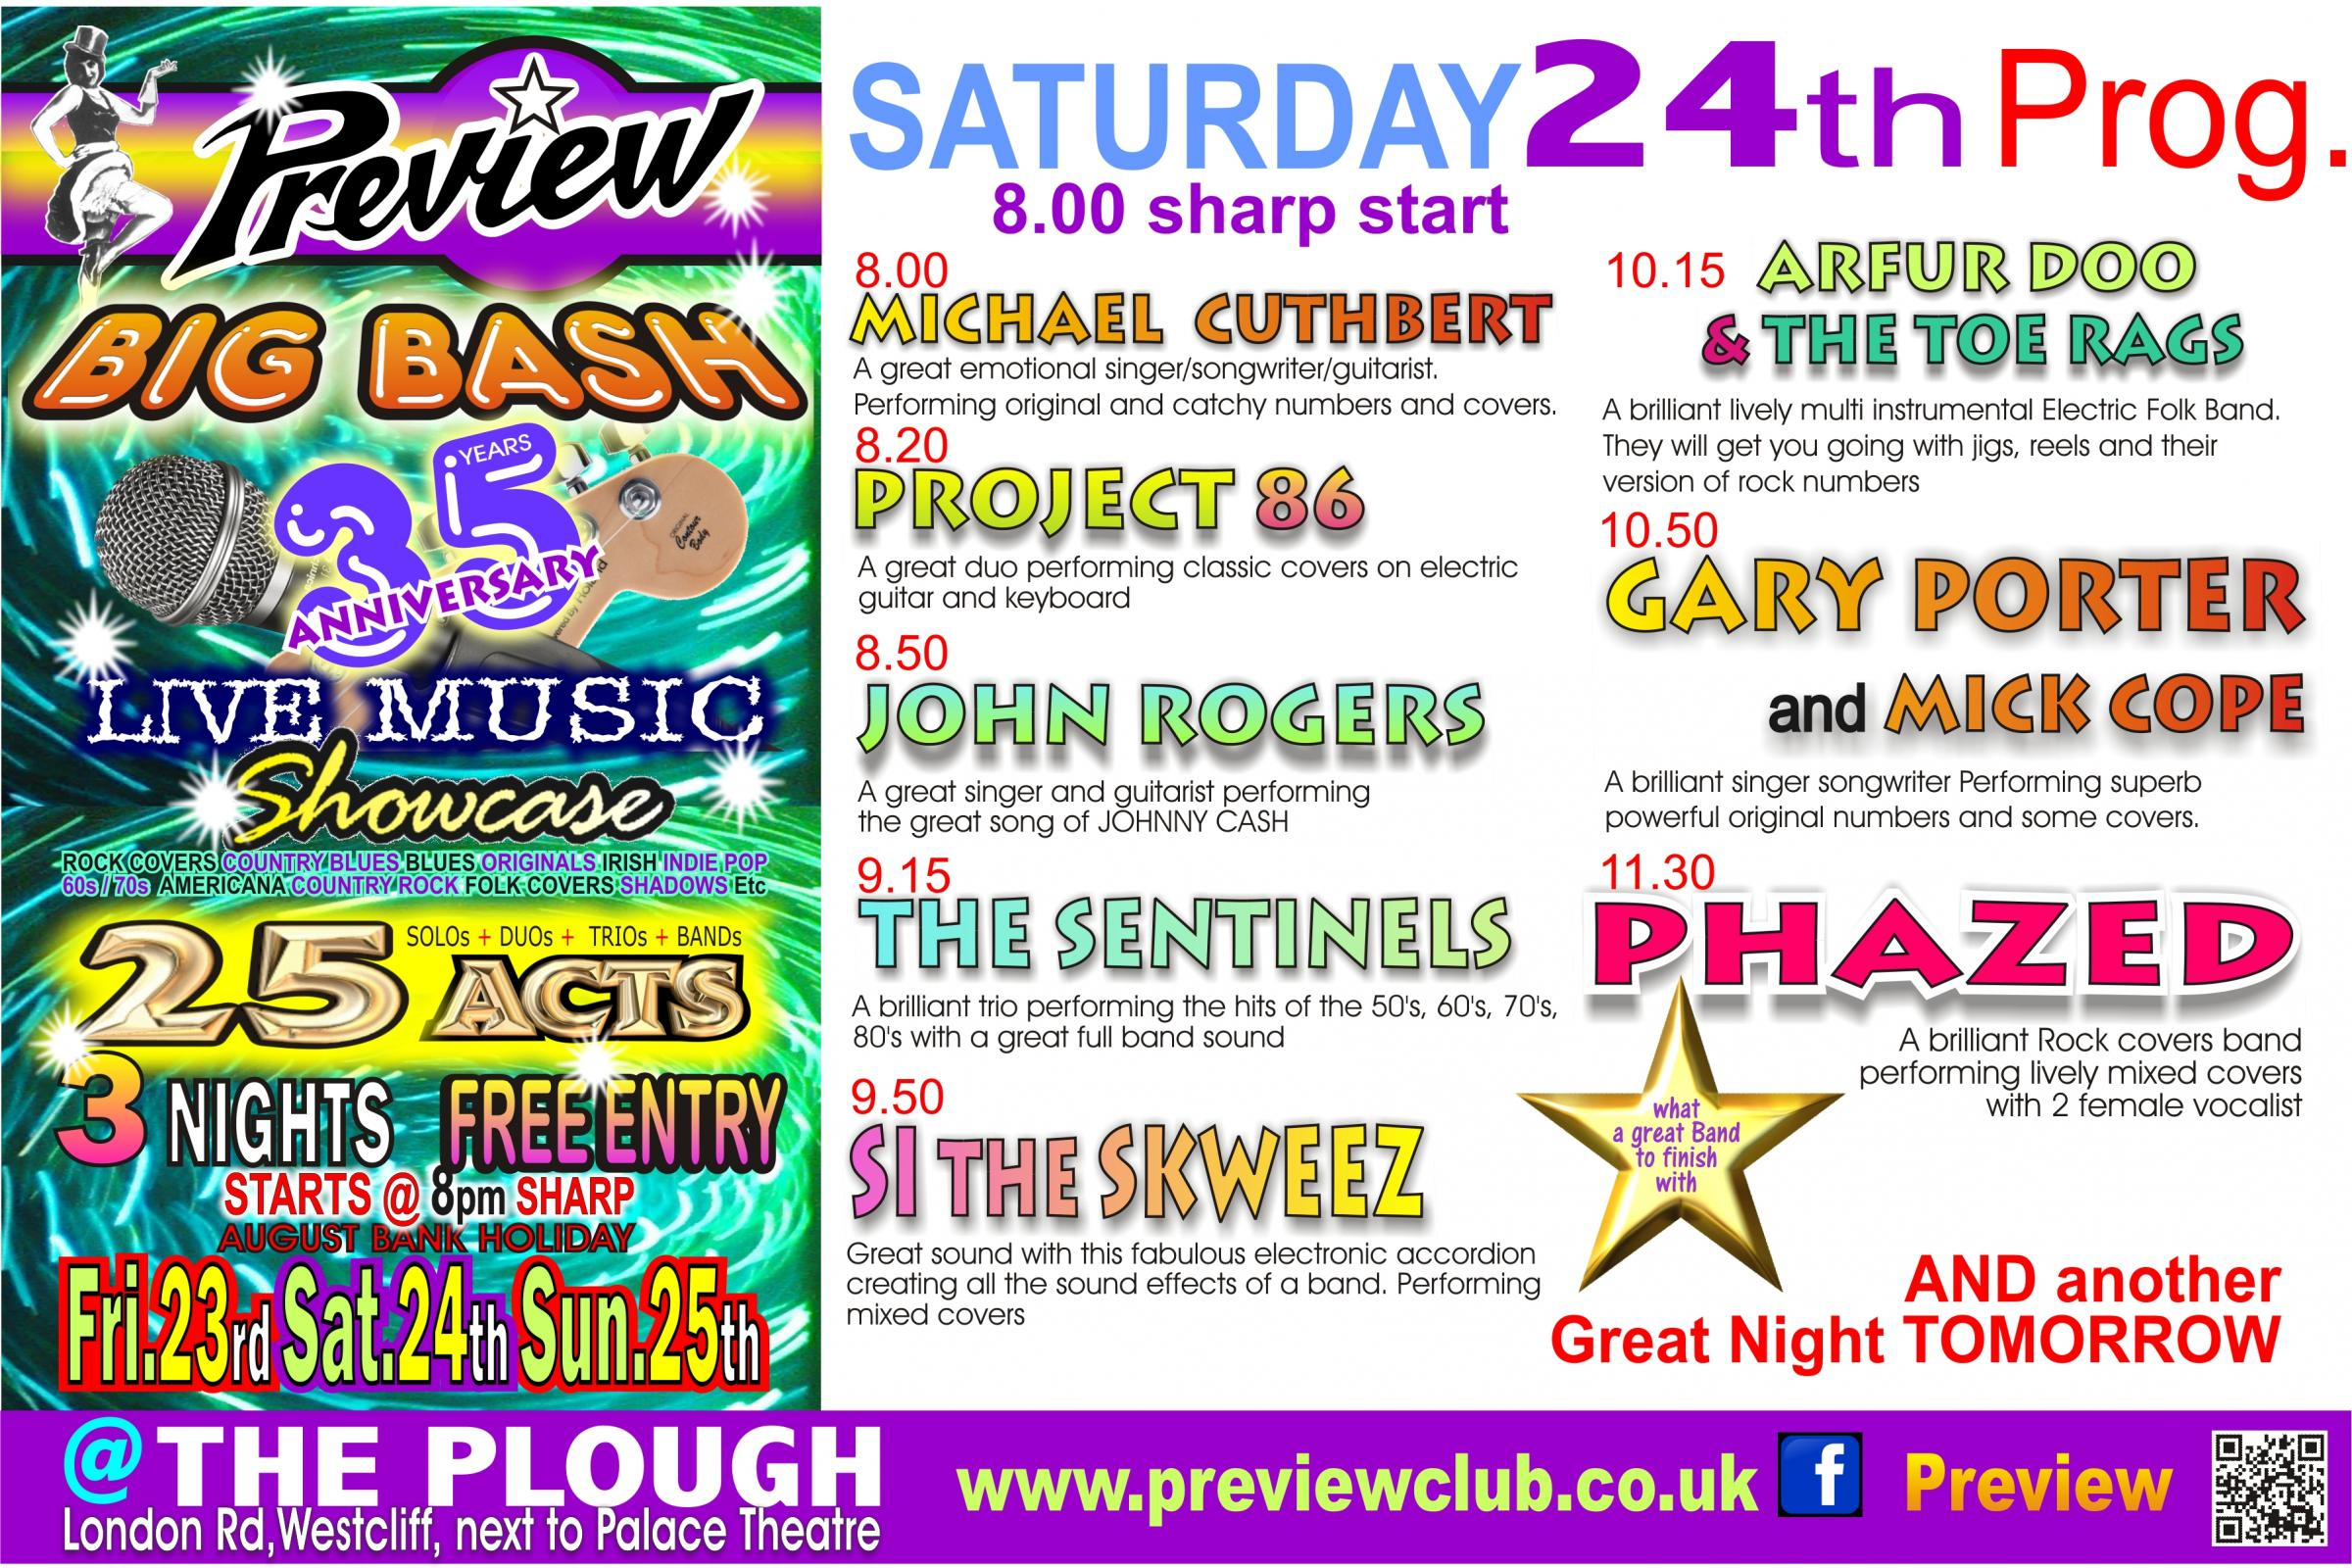 PREVIEW's Live Music BIG BASH Saturday 24th